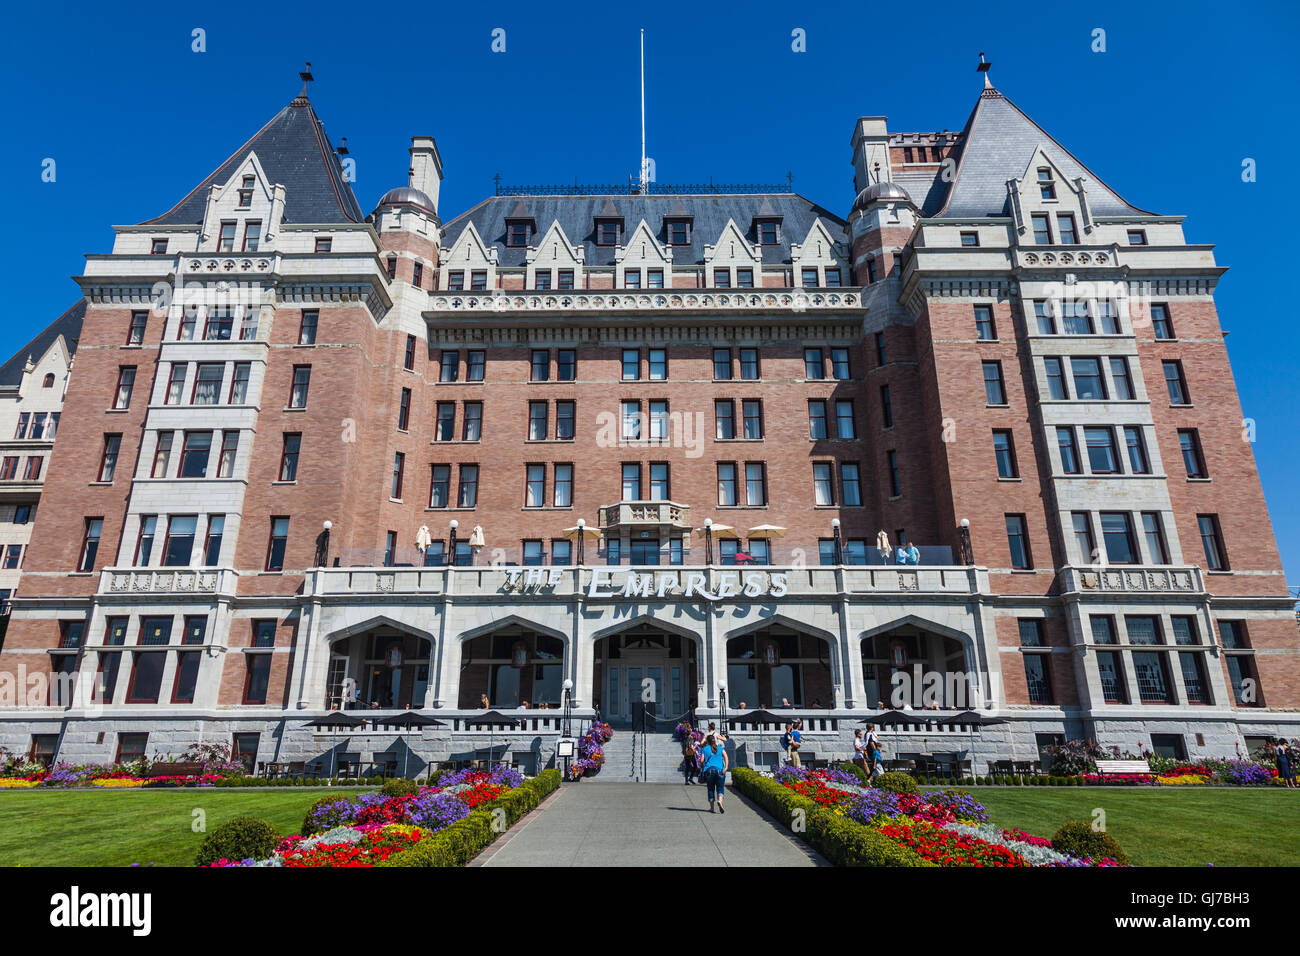 Outside view of the Empress Hotel in Victoria, after a major facelift to remove all traces of Ivy from the walls. Stock Photo